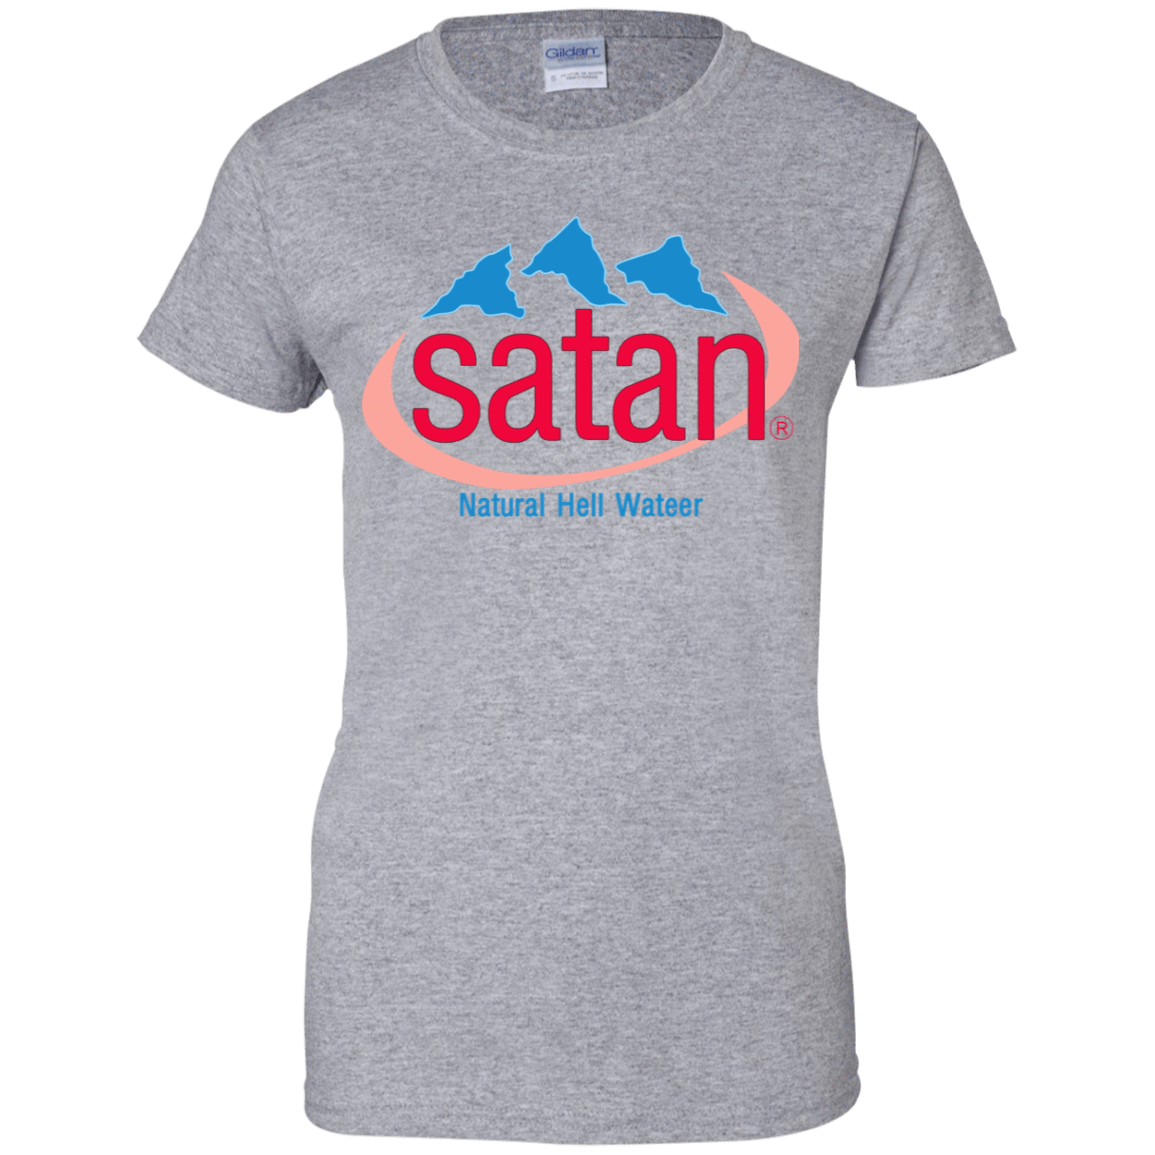 Satan: Natural Hell Water 939-9265-73057075-44821 - Tee Ript